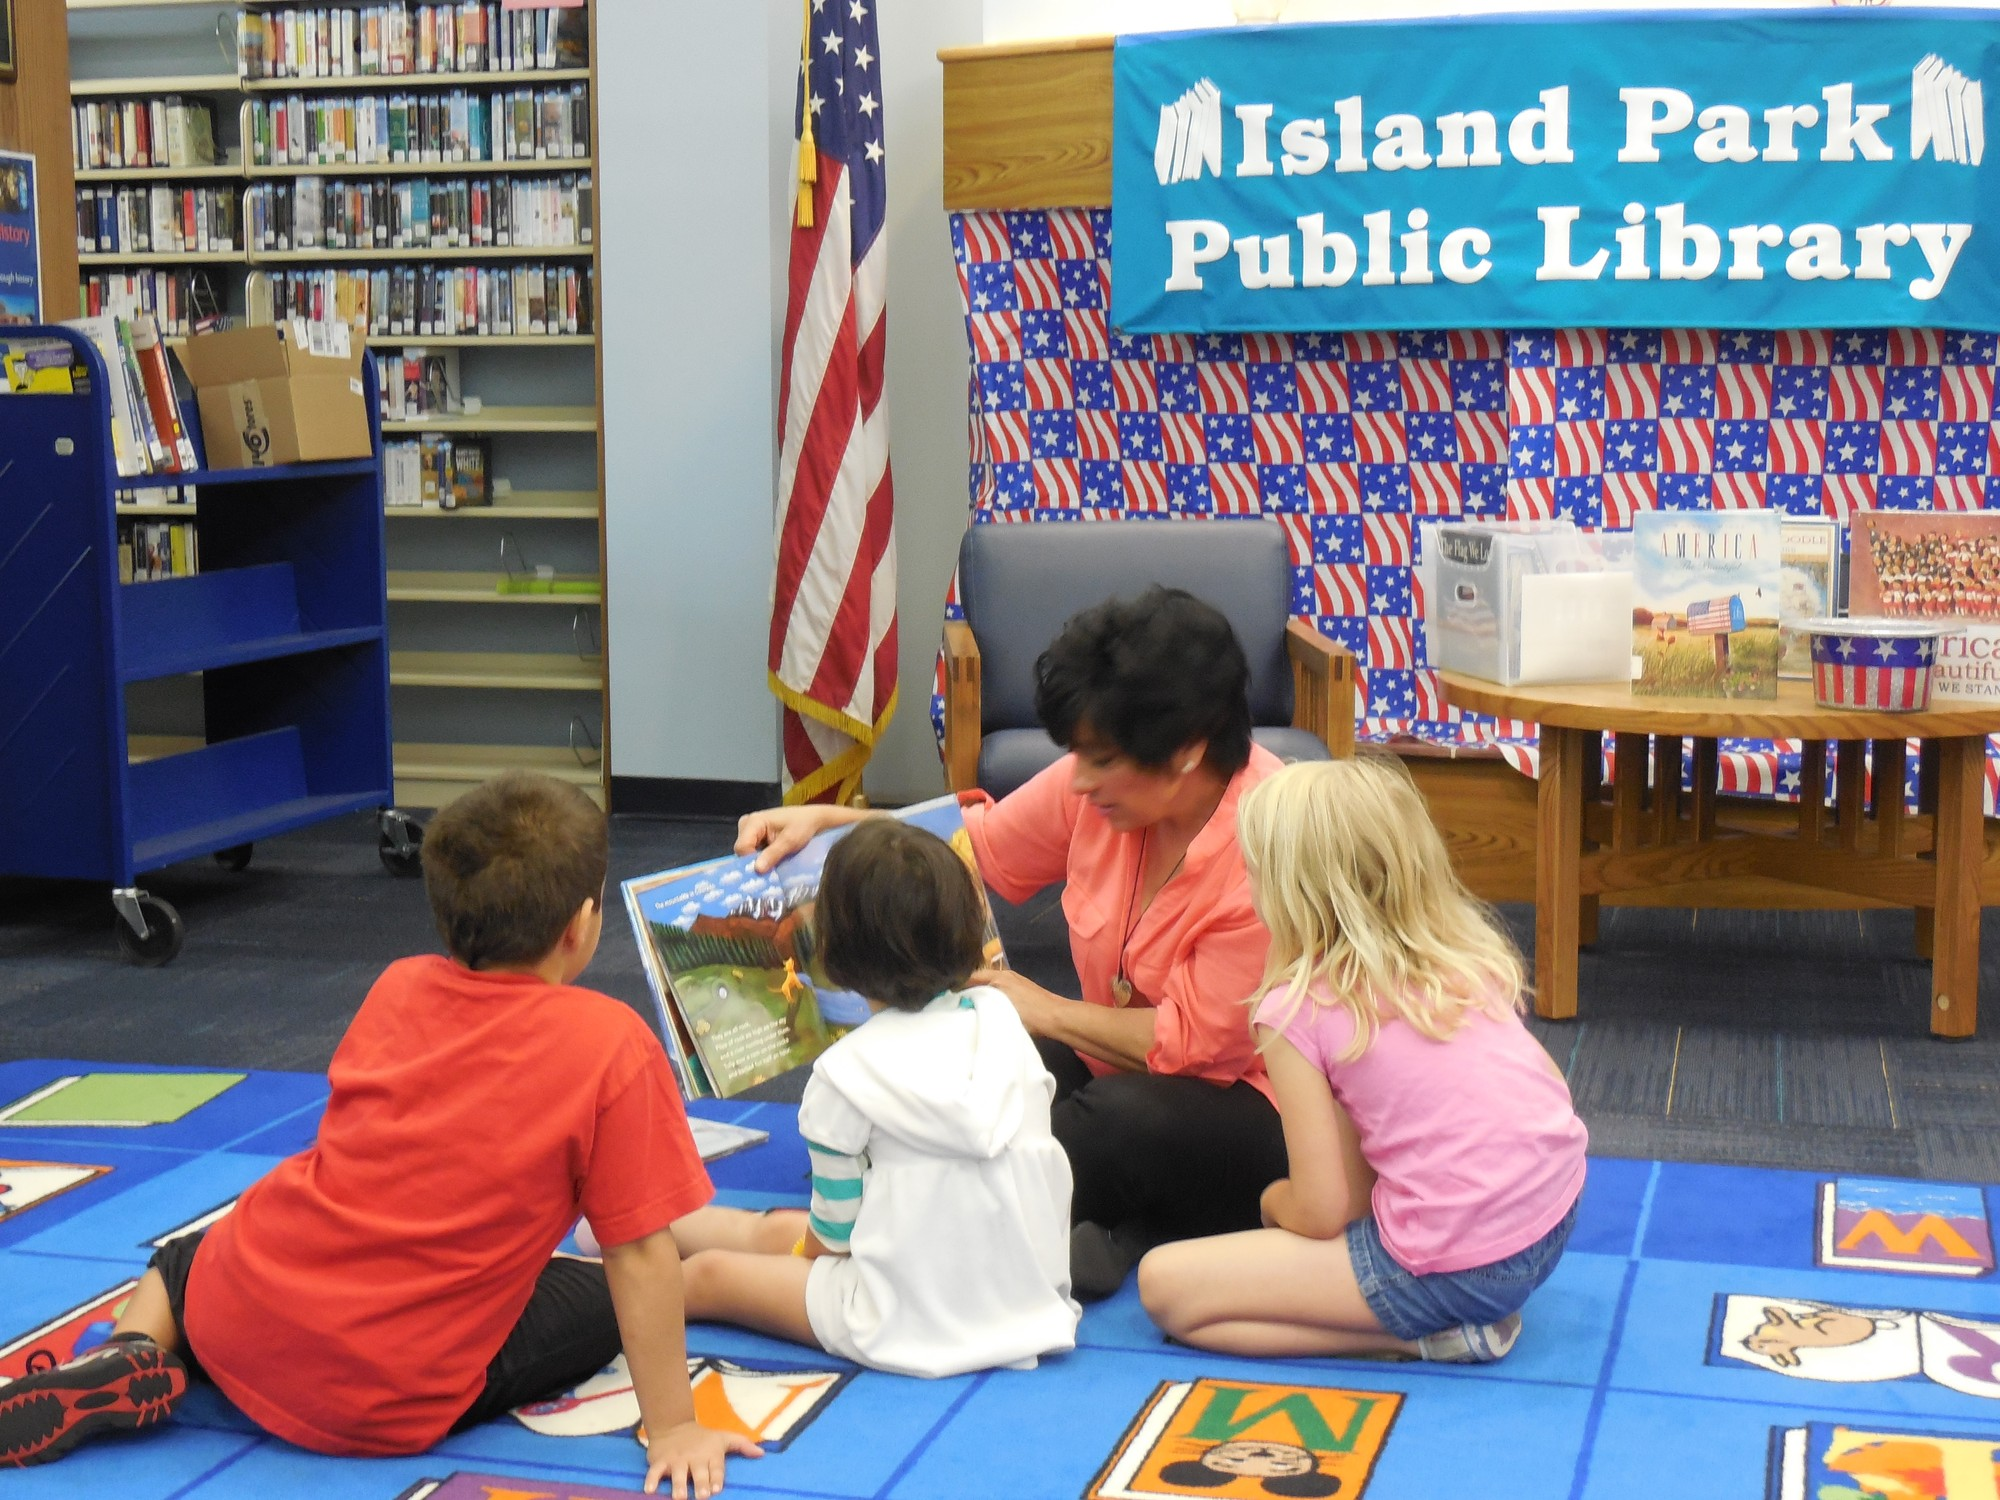 Linda Mangano, wife of Nassau County Executive Ed Mangano, was a guest reader at the Island Park Library.